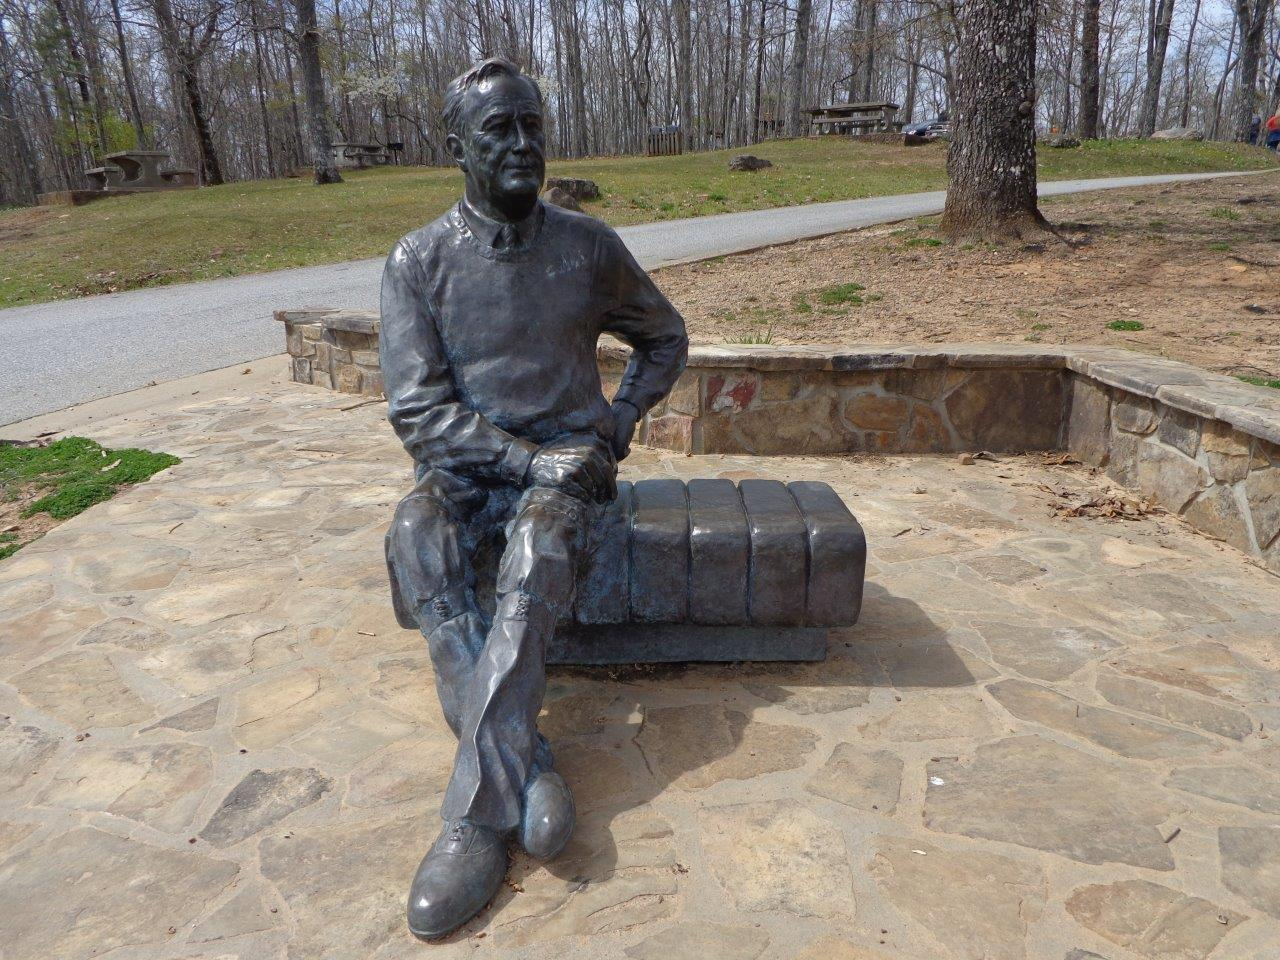 FDR statue on Pine Mountain, Georgia